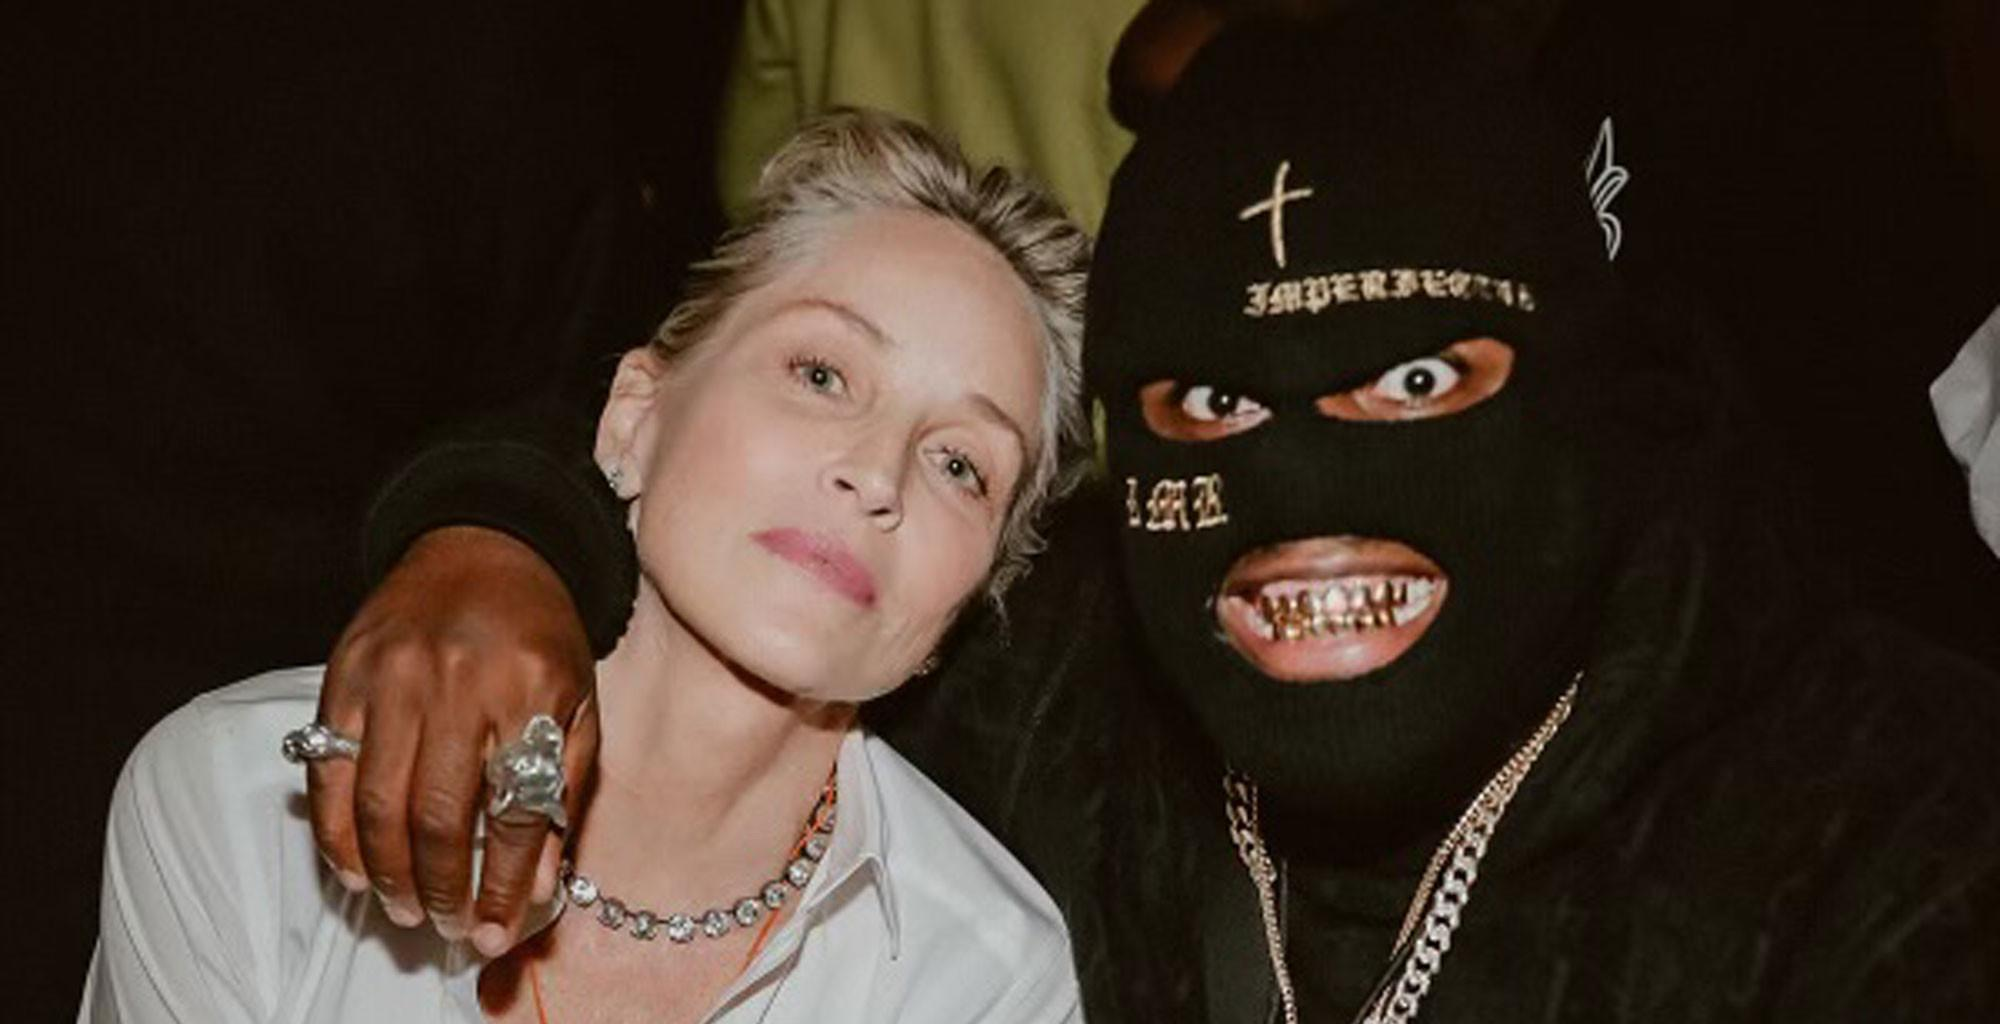 Sharon Stone Reportedly 'Canoodling' With Rapper 38 Years Younger Than Her - All About Their Reported Romance!